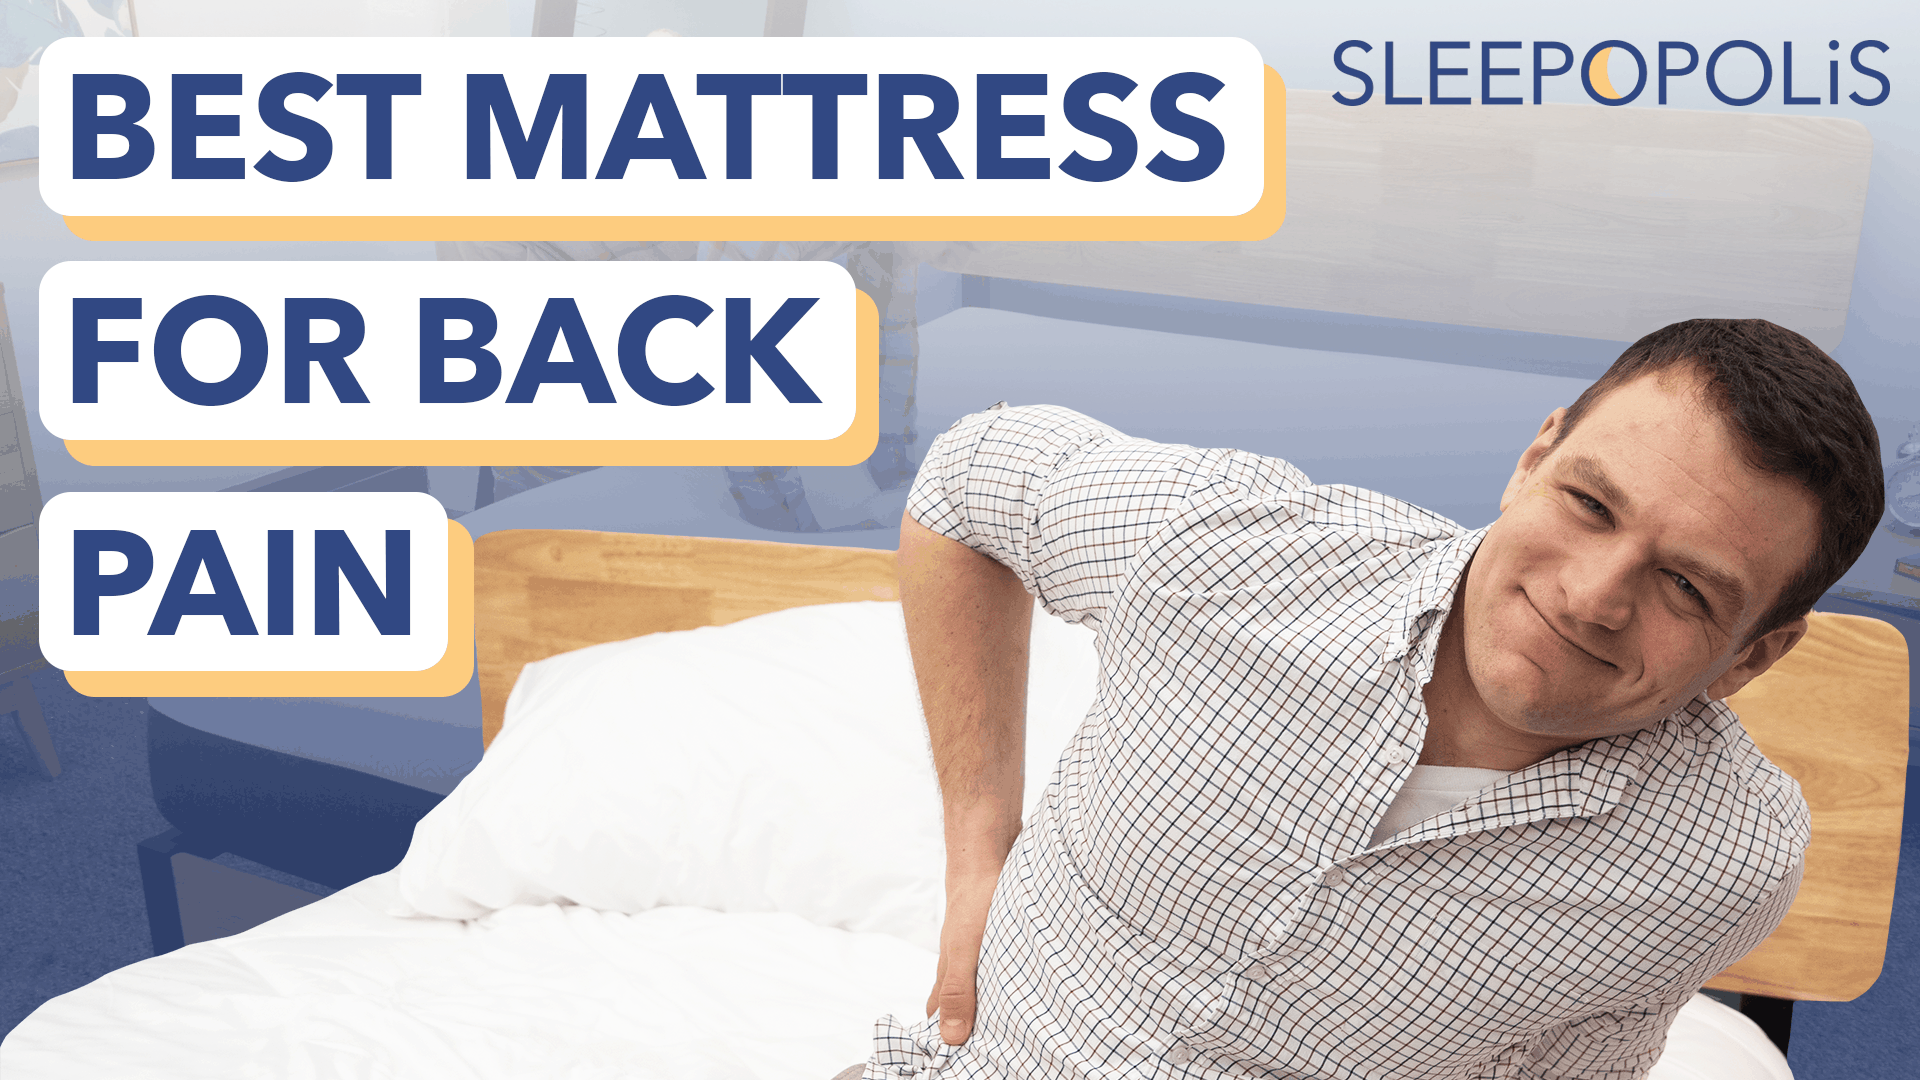 Best Mattress For Back Pain Sleepopolis